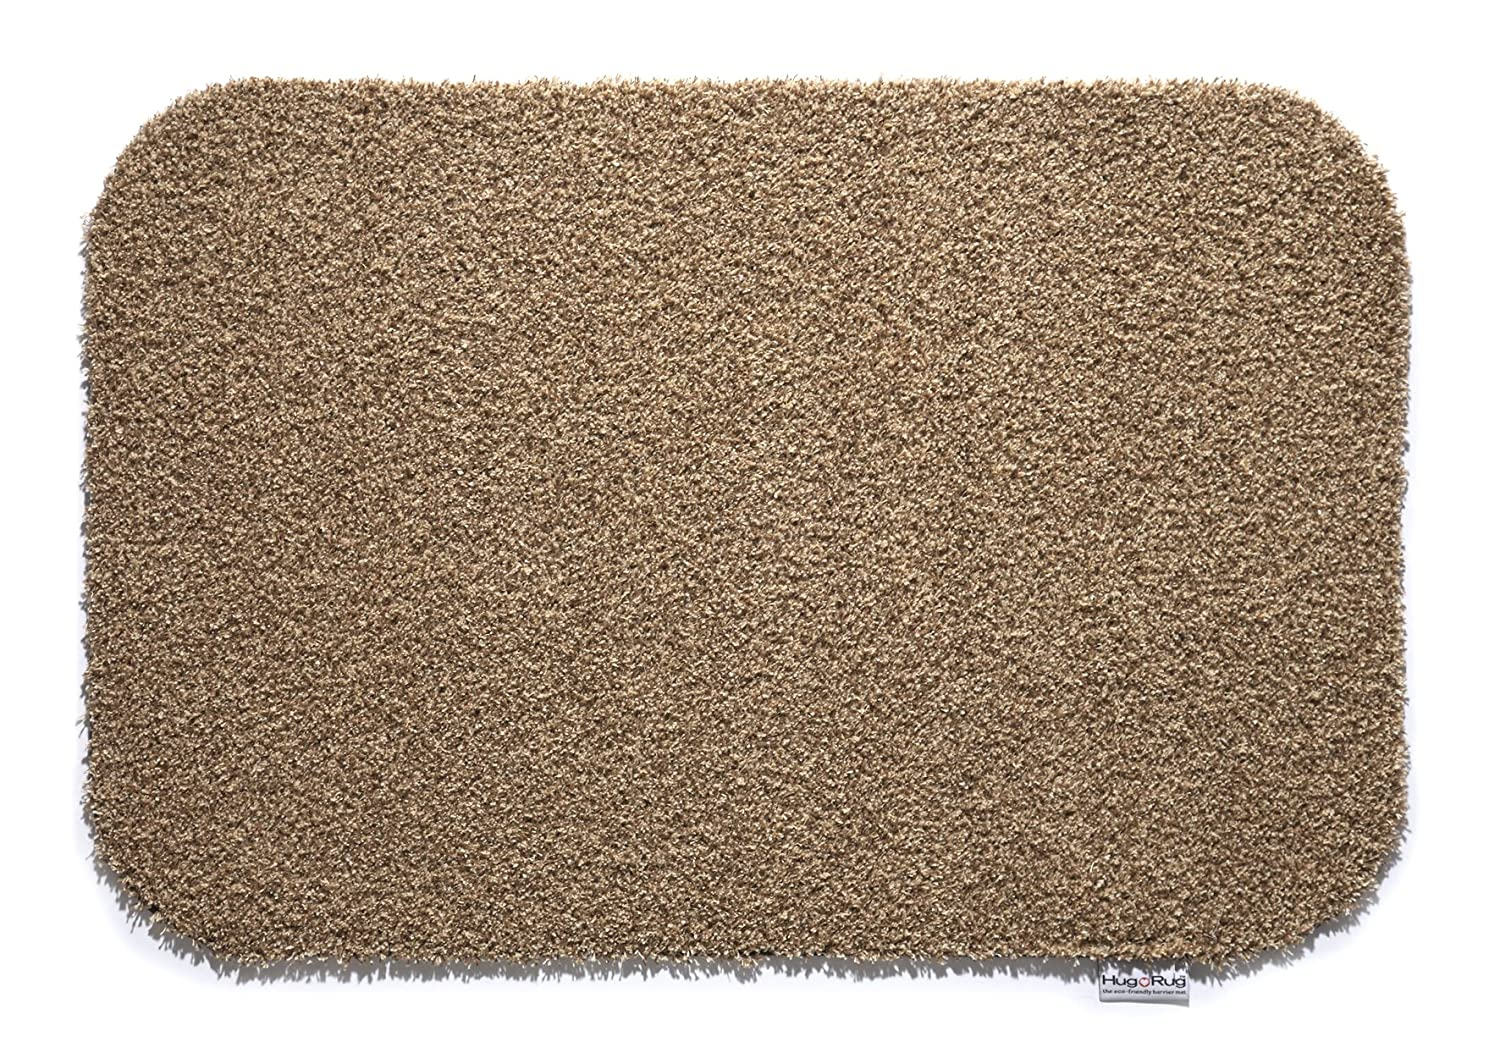 Mat door large alpine neighbor block door mat washable for Door mats amazon